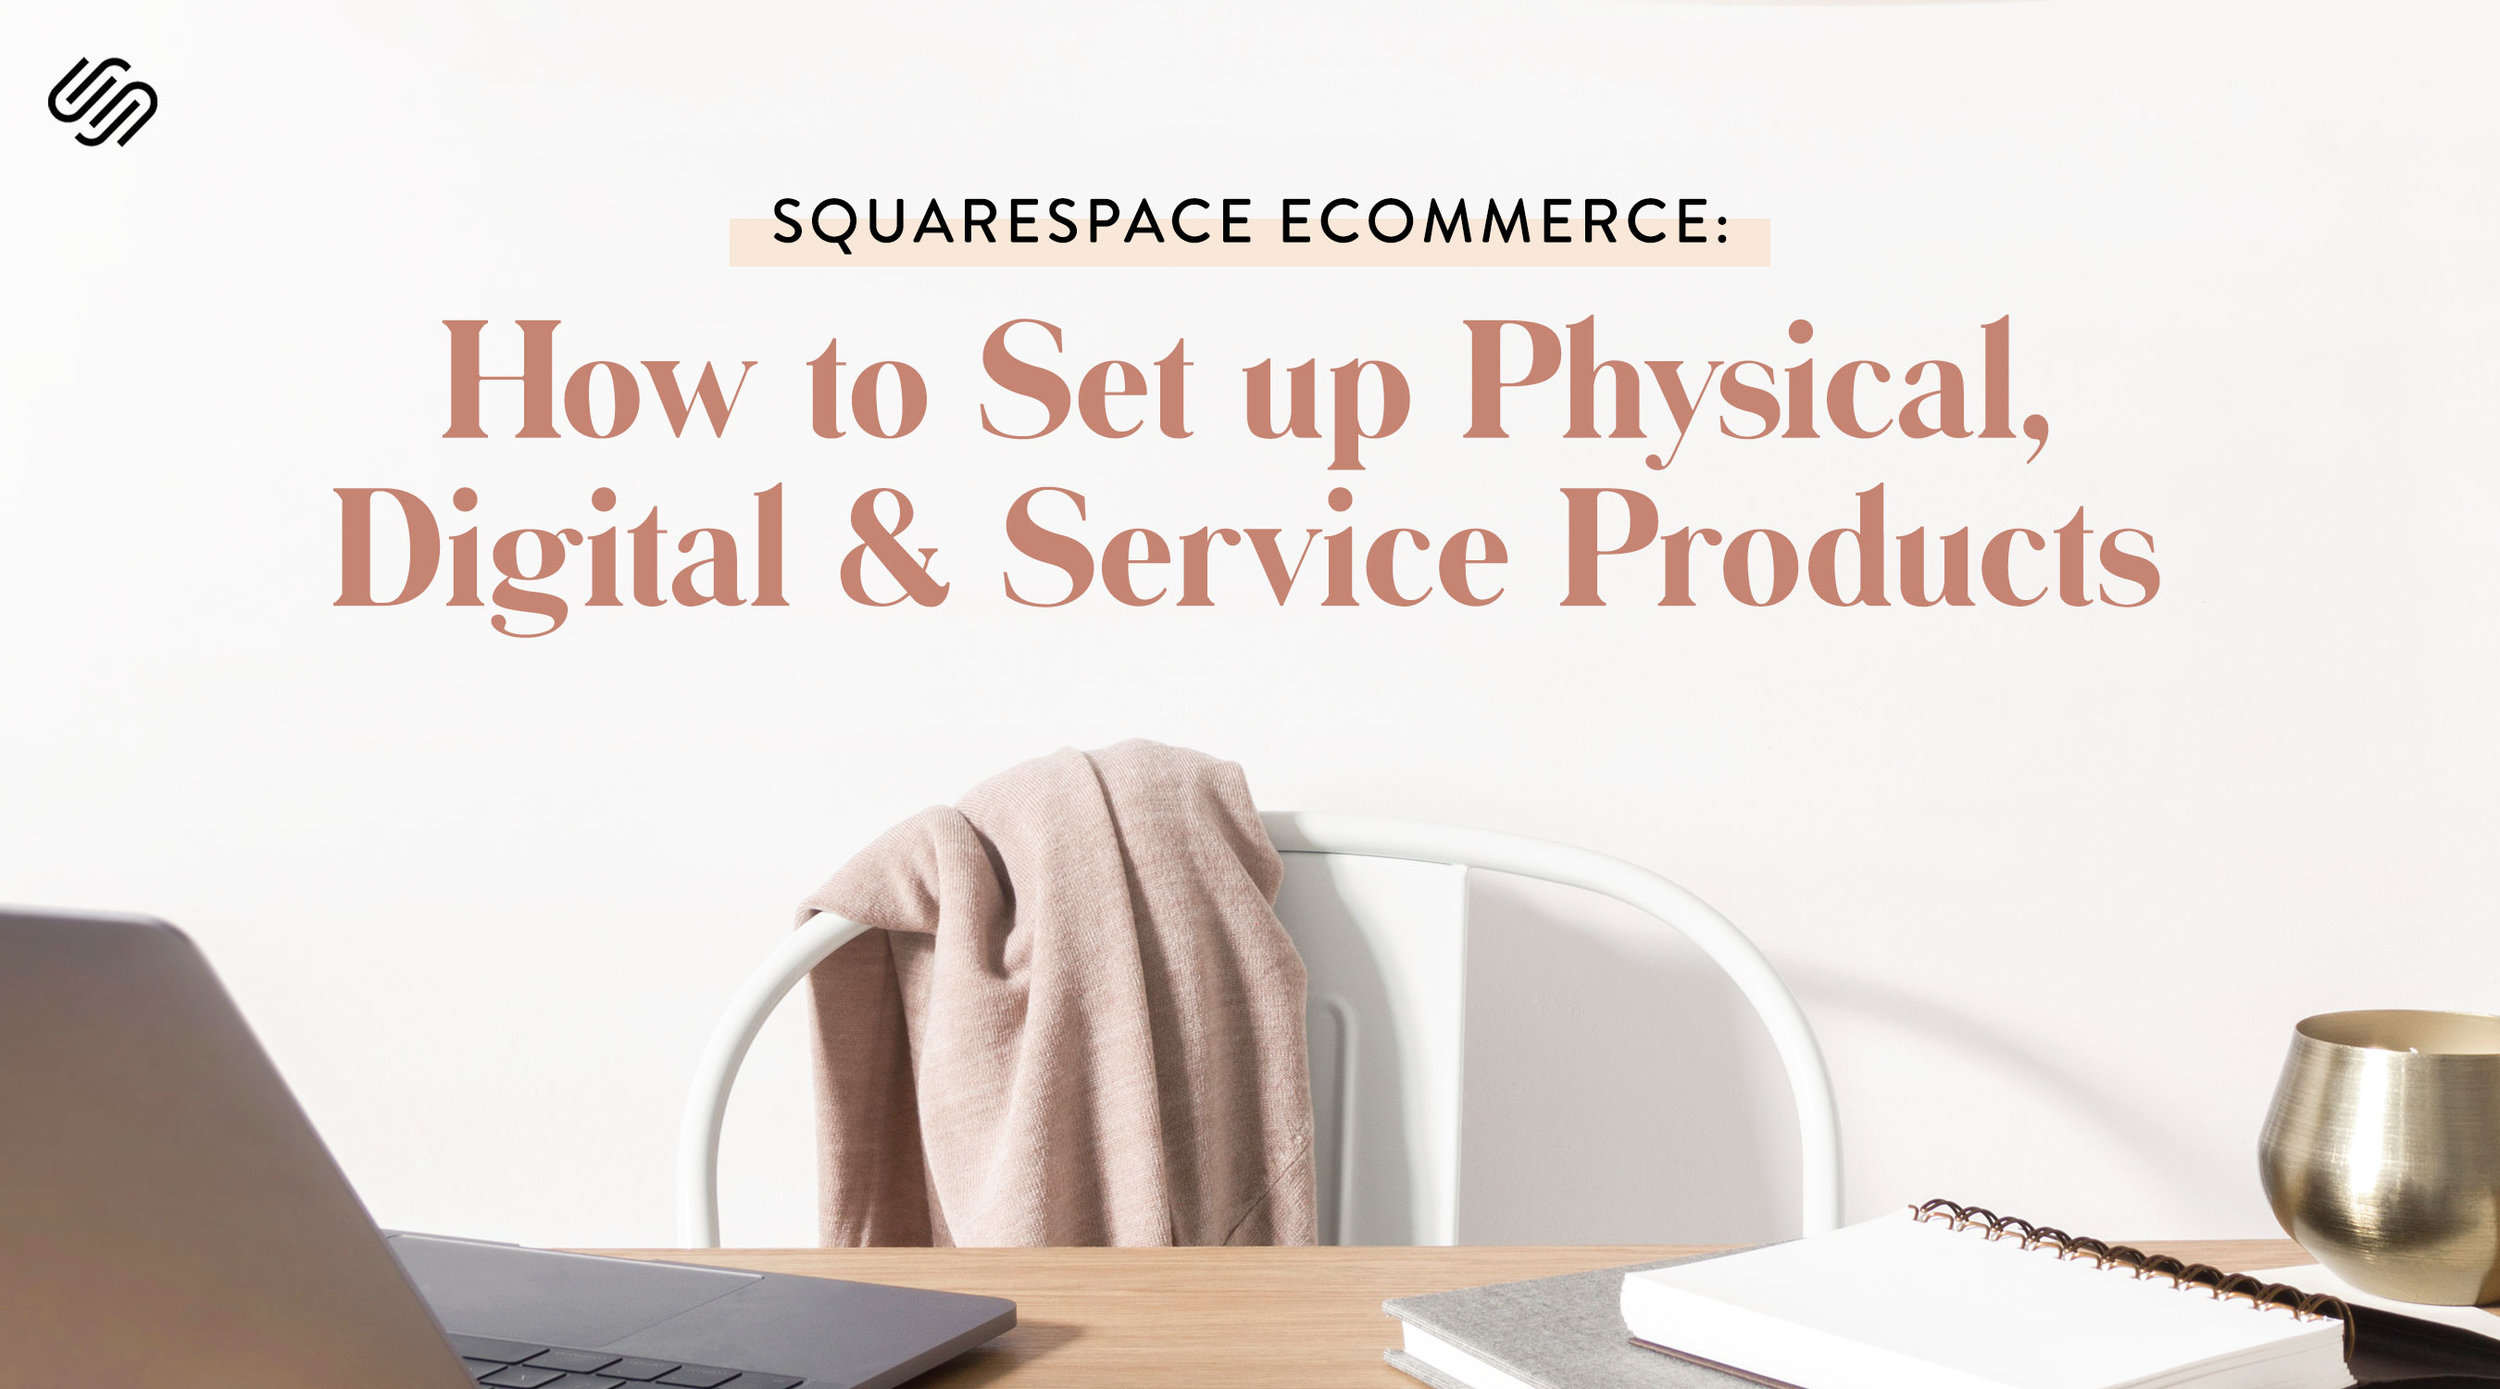 Squarespace eCommerce: How to set up Physical, digital and service products - In this class, I will walk you through how to set up physical, digital and service-based products within the Squarespace platform so you can have conversion success, no matter what you're selling.If you've wanted to expand your Squarespace site to be eCommerce-enabled, this is a great class for you to take!